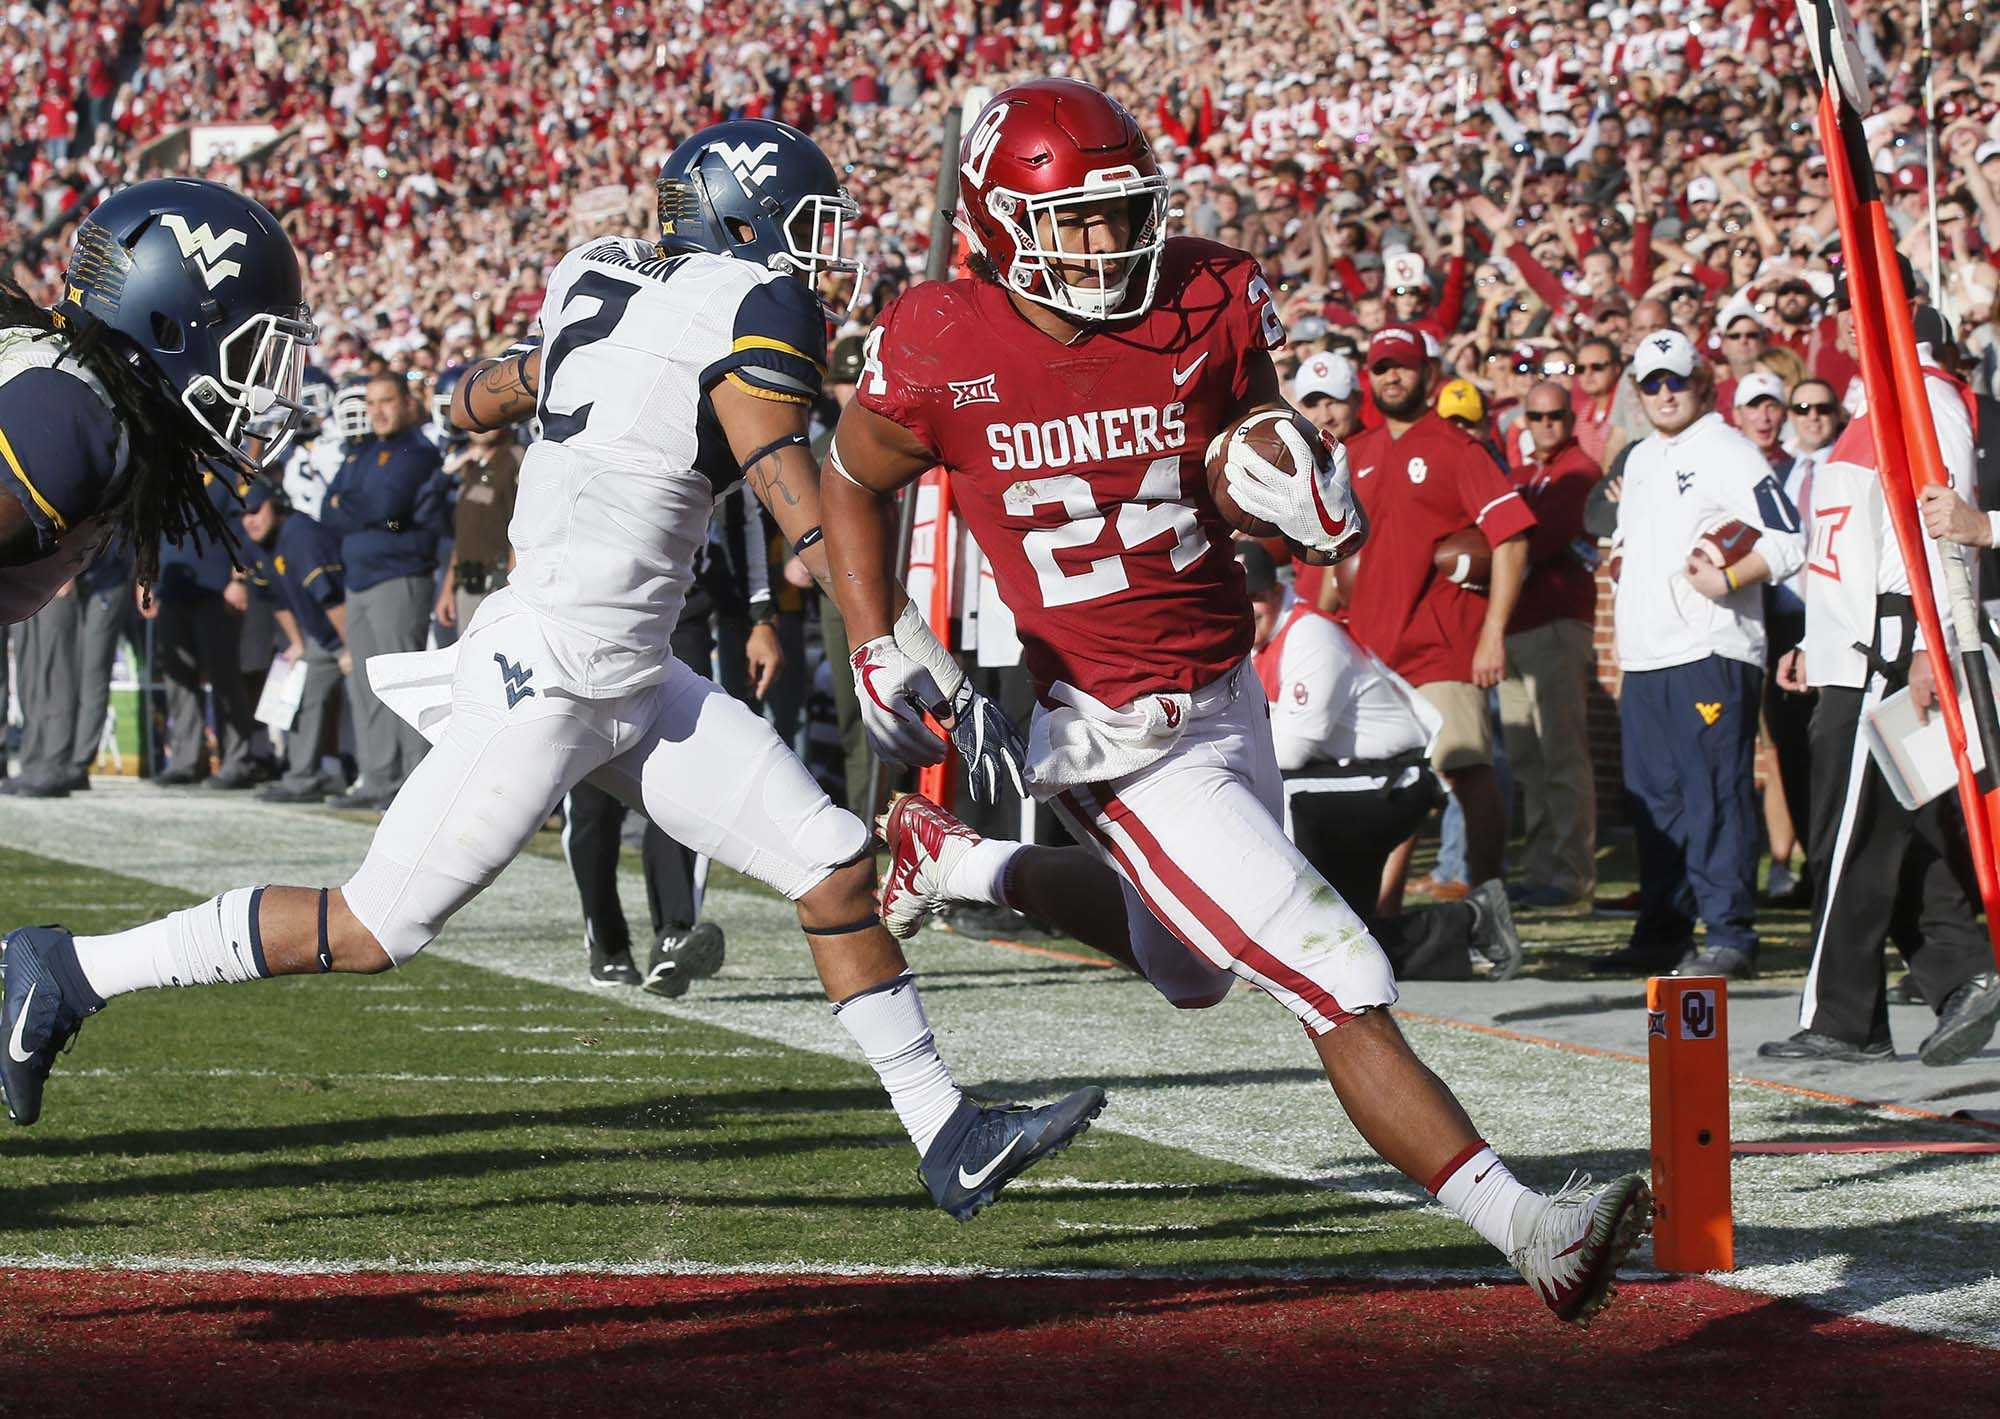 Oklahoma Sooners' Lead Running Back Accused Of Rape